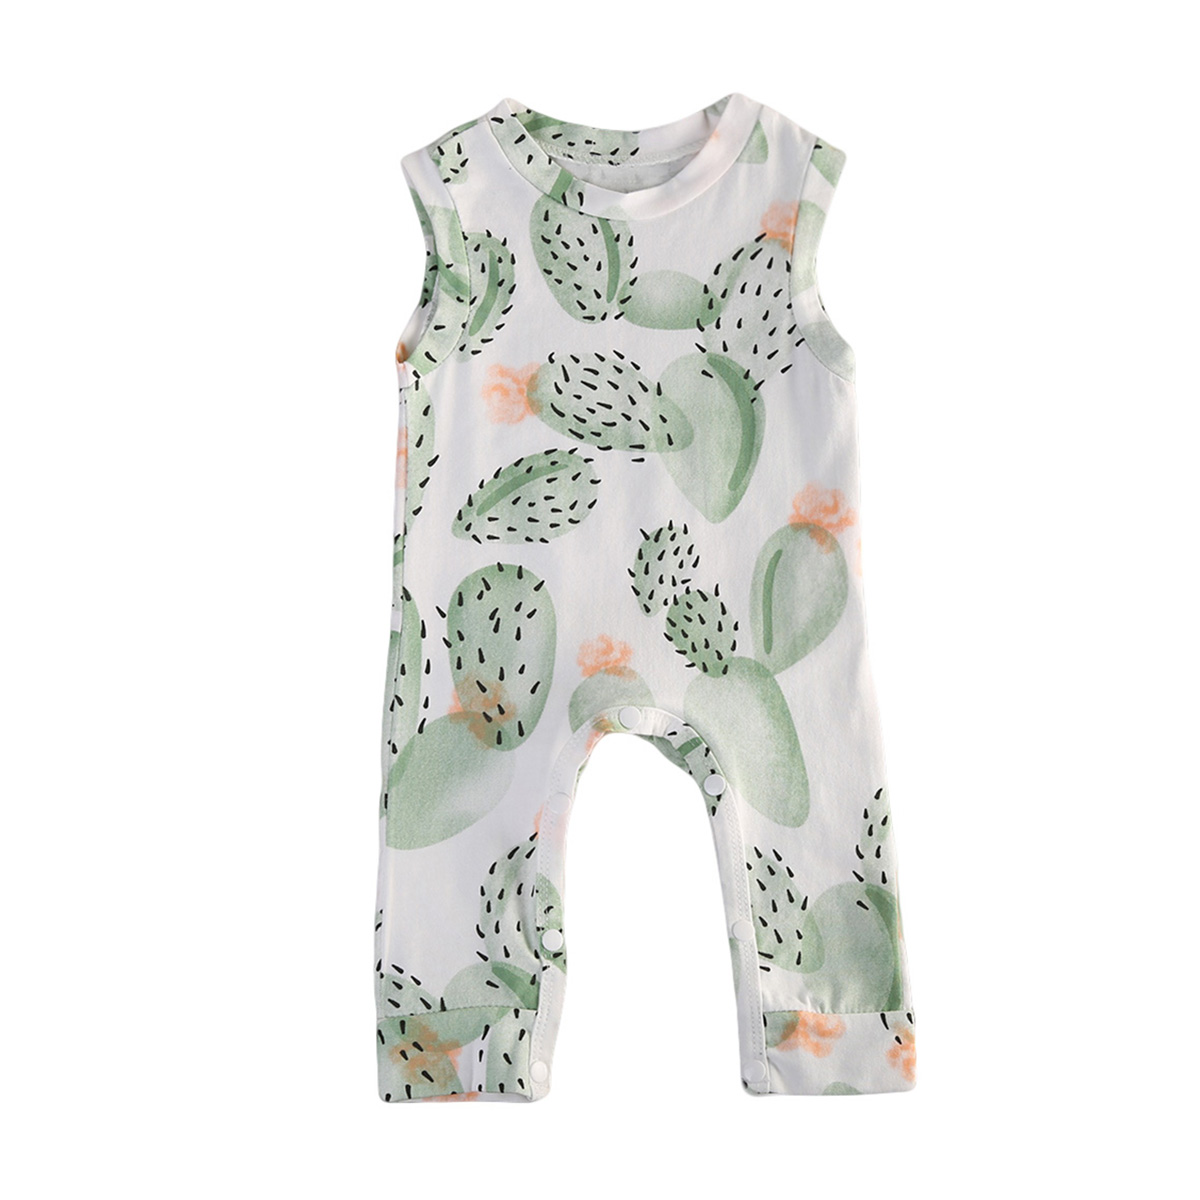 New Arrival Summer Newborn Baby Boy Girl Cactus Print Jumpsuit Babies Boys Girls Cotton   Romper   Jumpsuit Clothes Outfits Sunsuit